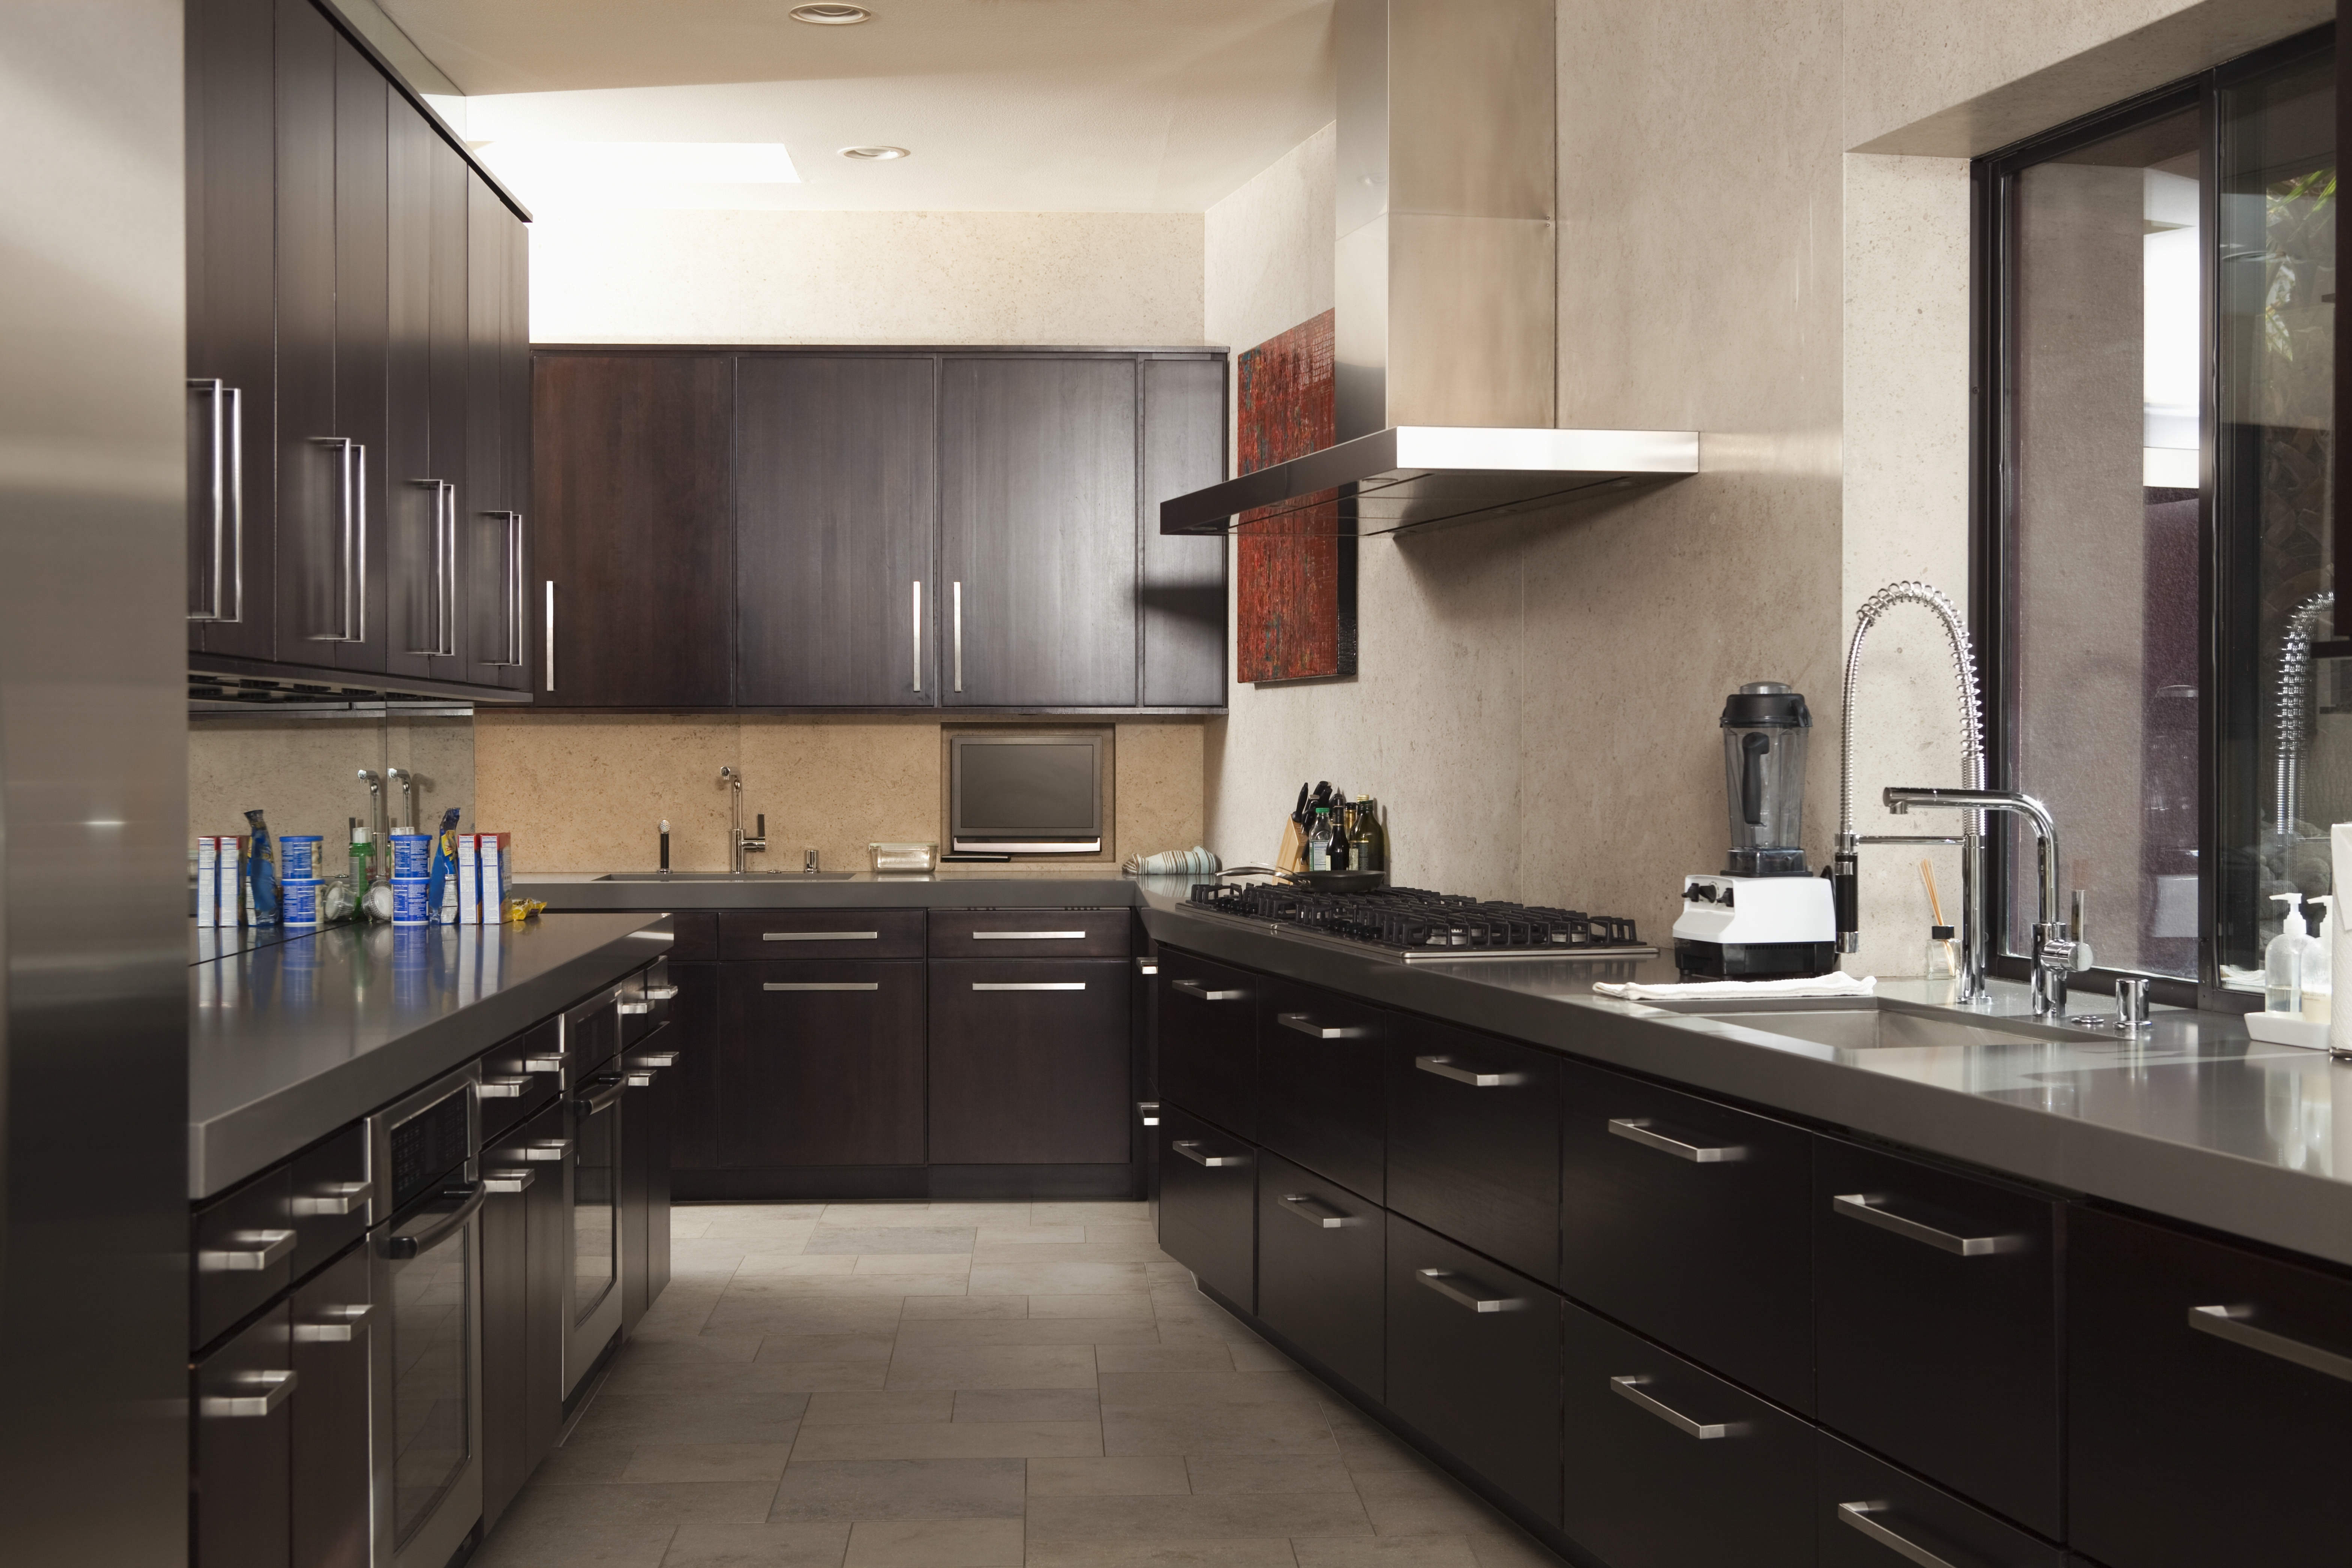 Photo Of Kitchen With Black Cabinets